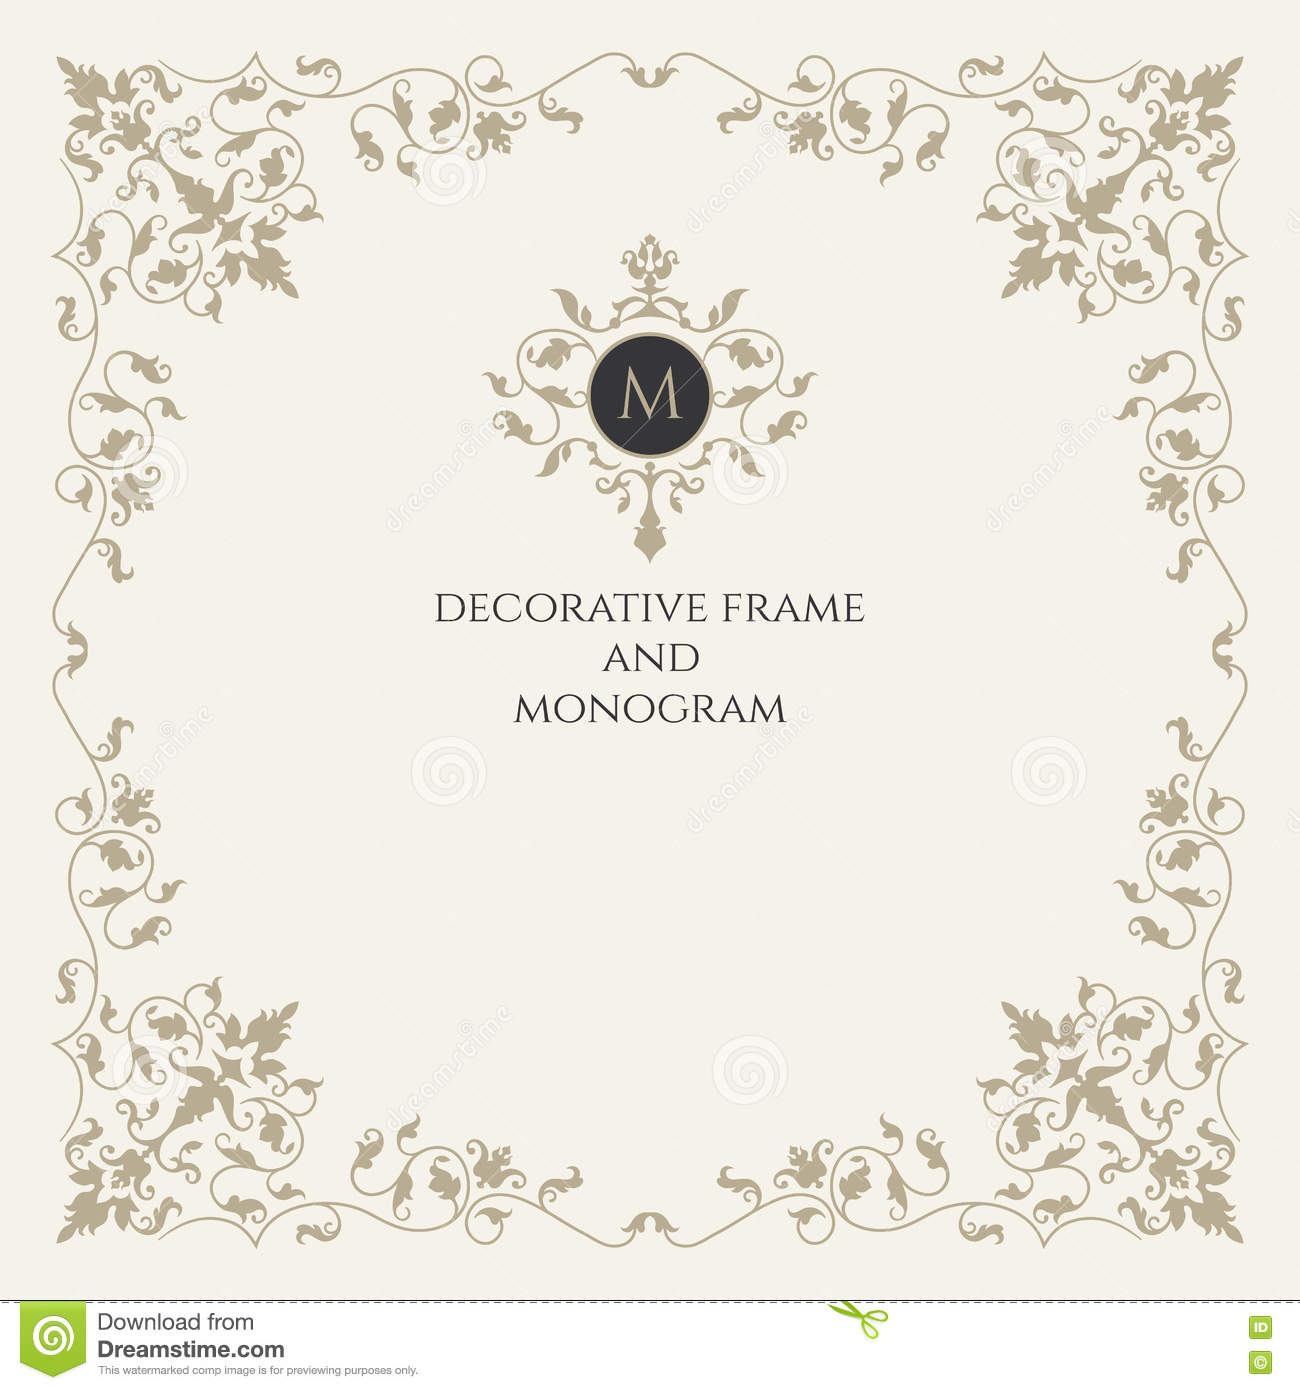 Classical Elements. Monogram And Frame. Classic Design Elements For ...